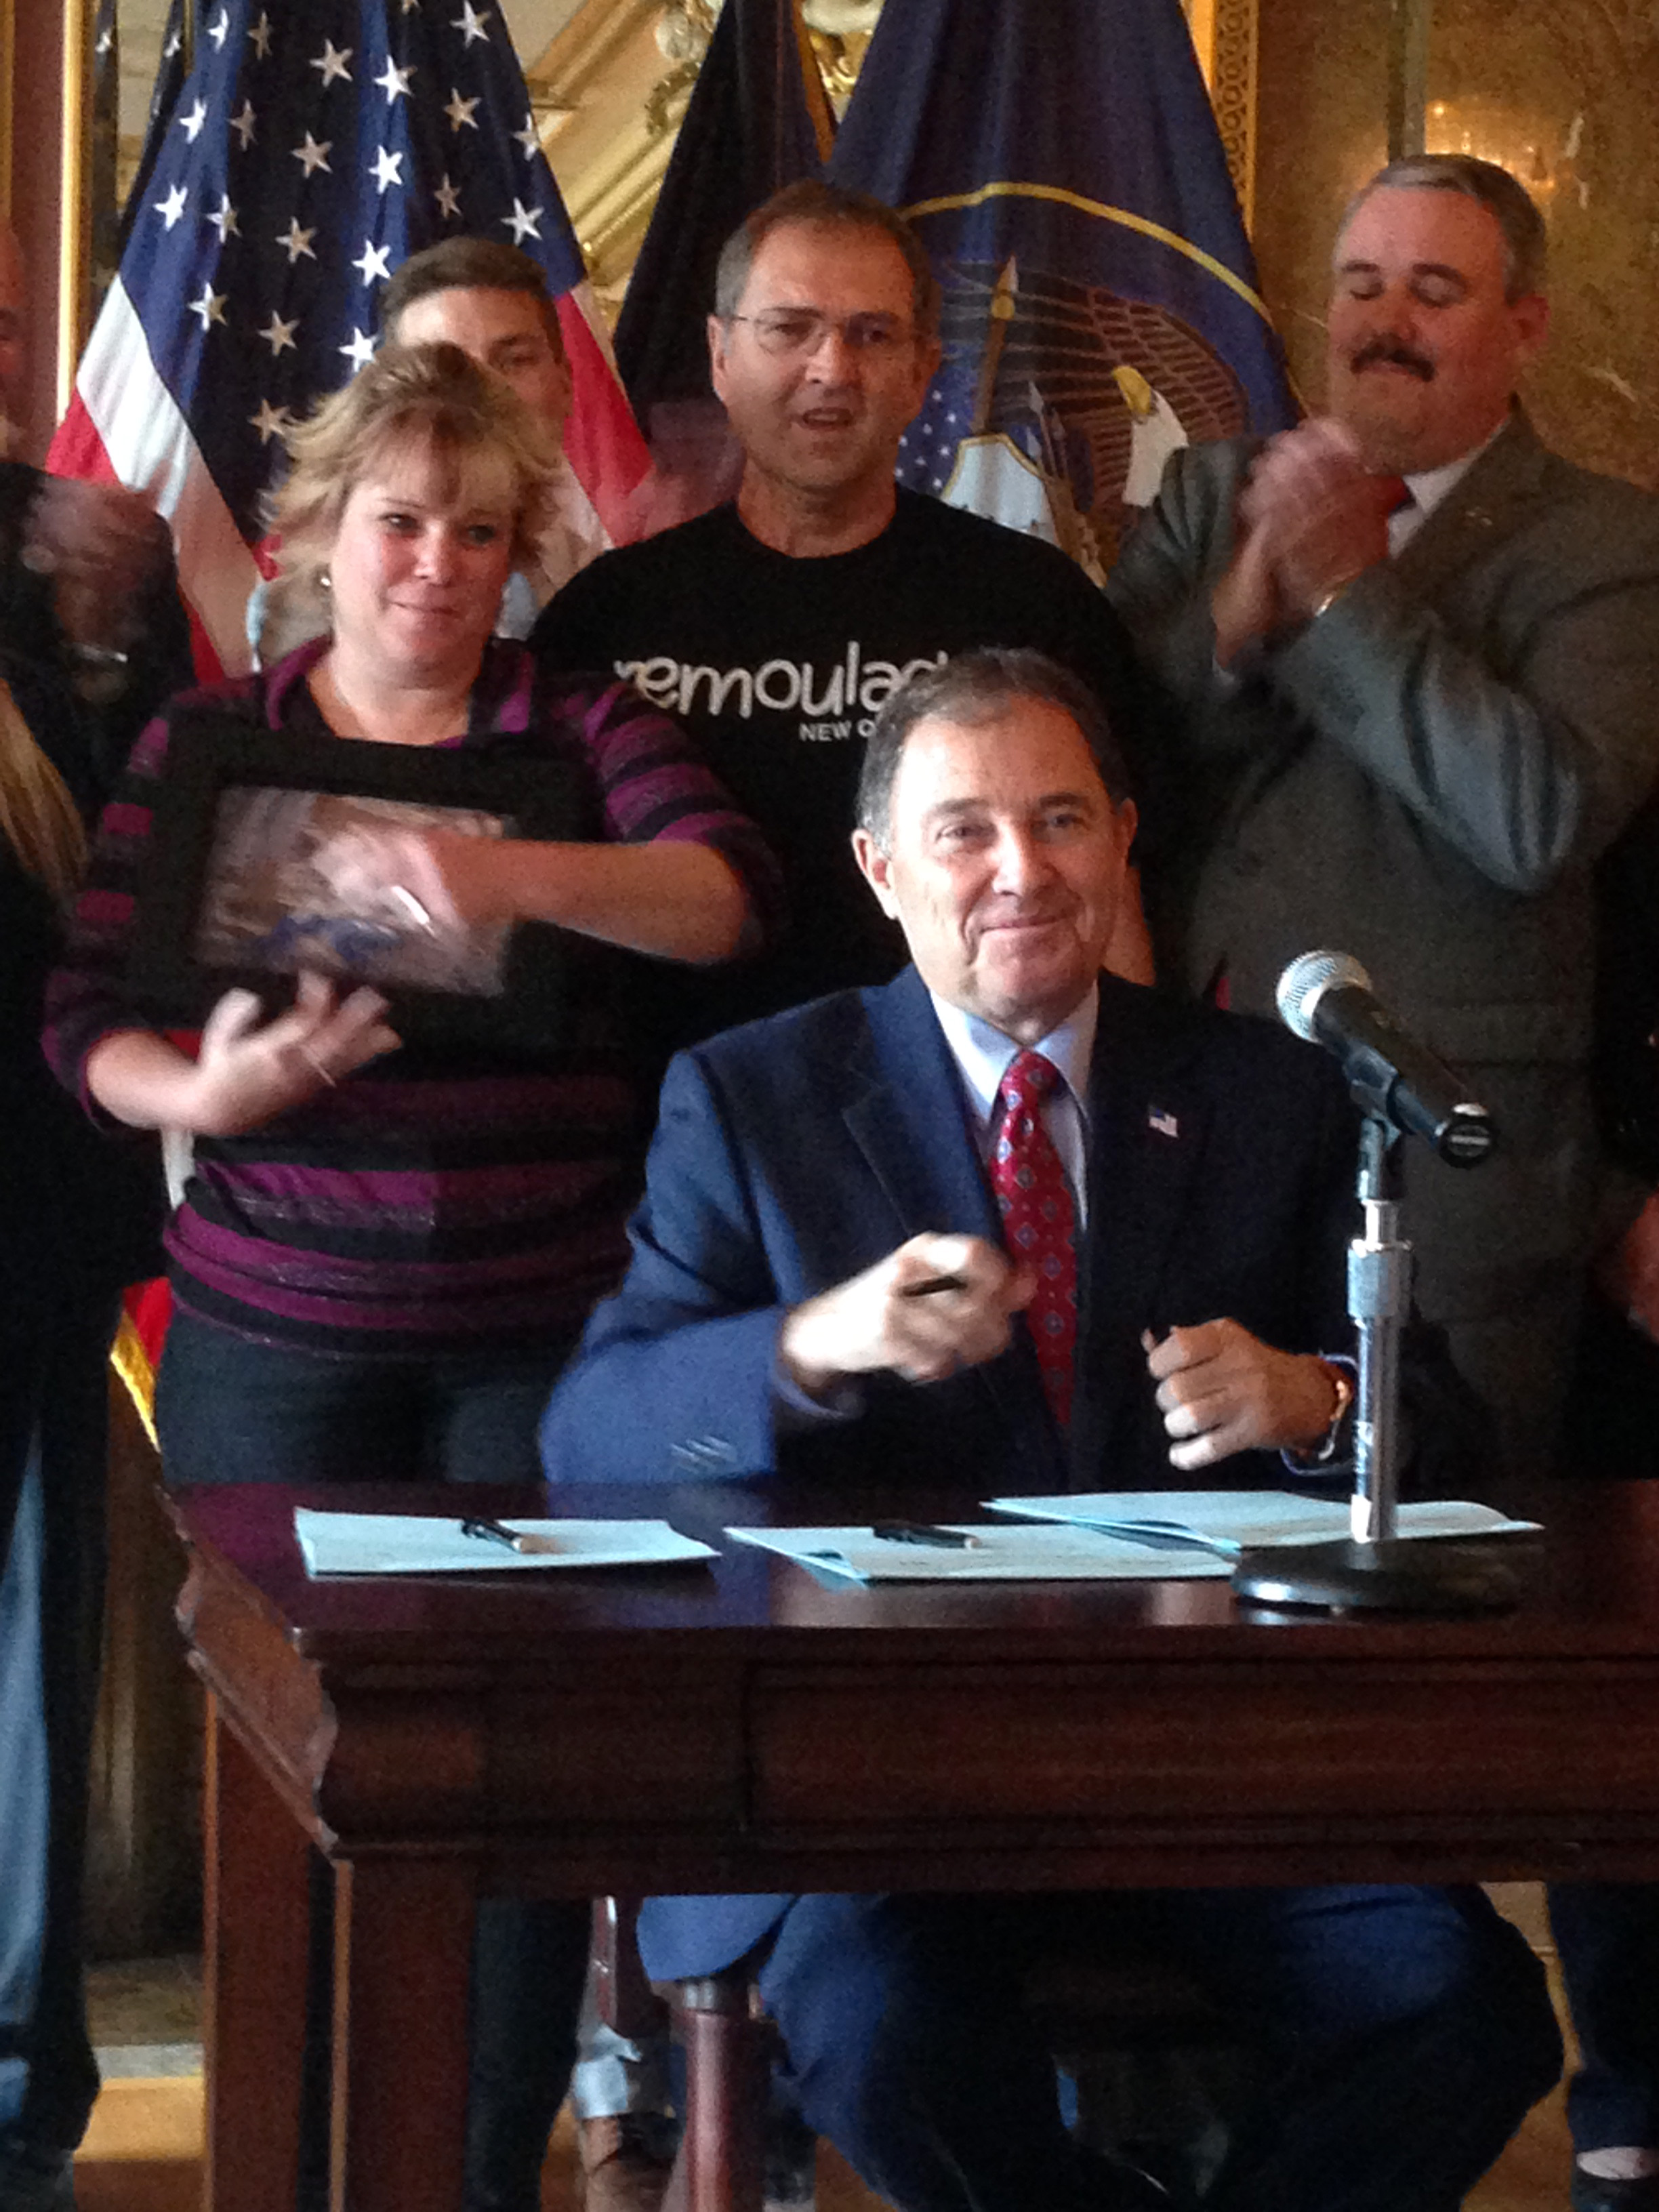 A Brigham City Family That Lost Teenage Daughter In Car Accident Celebrates As Gov Herbert Signs Ceremonial Copy Of HB 79 Law Creates Harsher